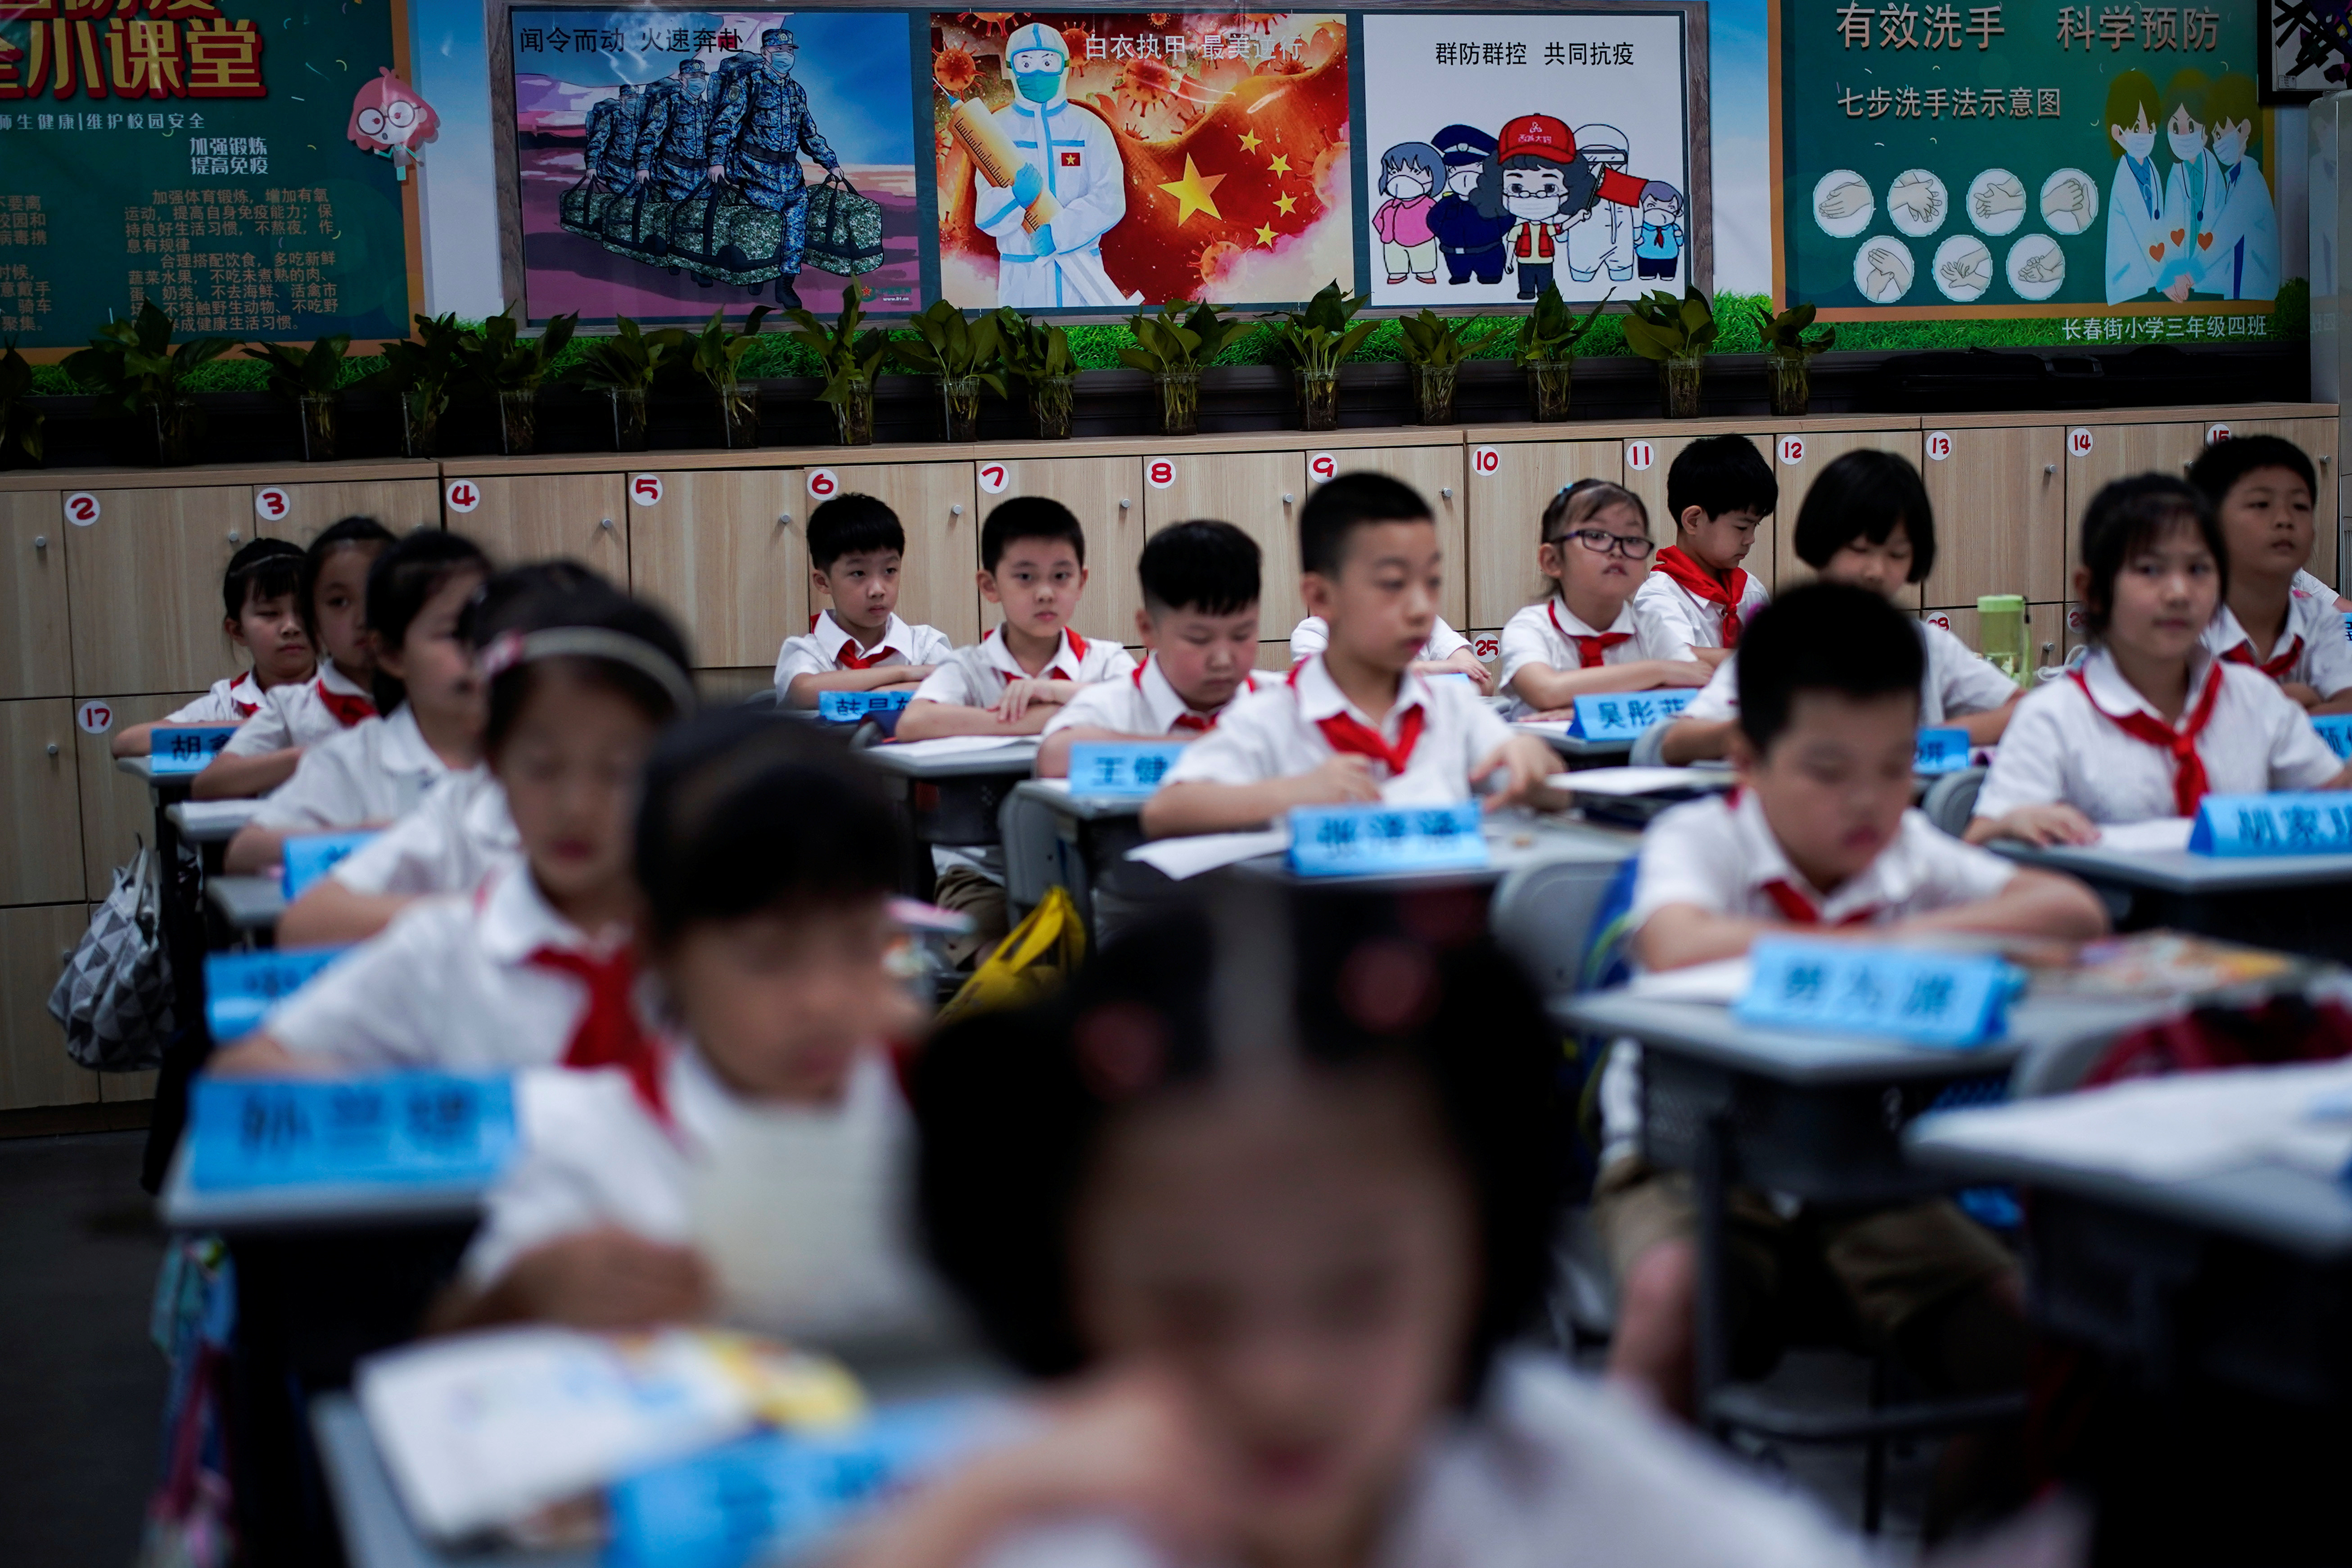 Students are pictured in a Chinese class at Changchun Street Primary School of Wuhan during a government-organized media tour following the coronavirus disease (COVID-19) outbreak, in Wuhan, Hubei province, China, September 4, 2020. REUTERS/Aly Song - RC2ERI9EZ01K